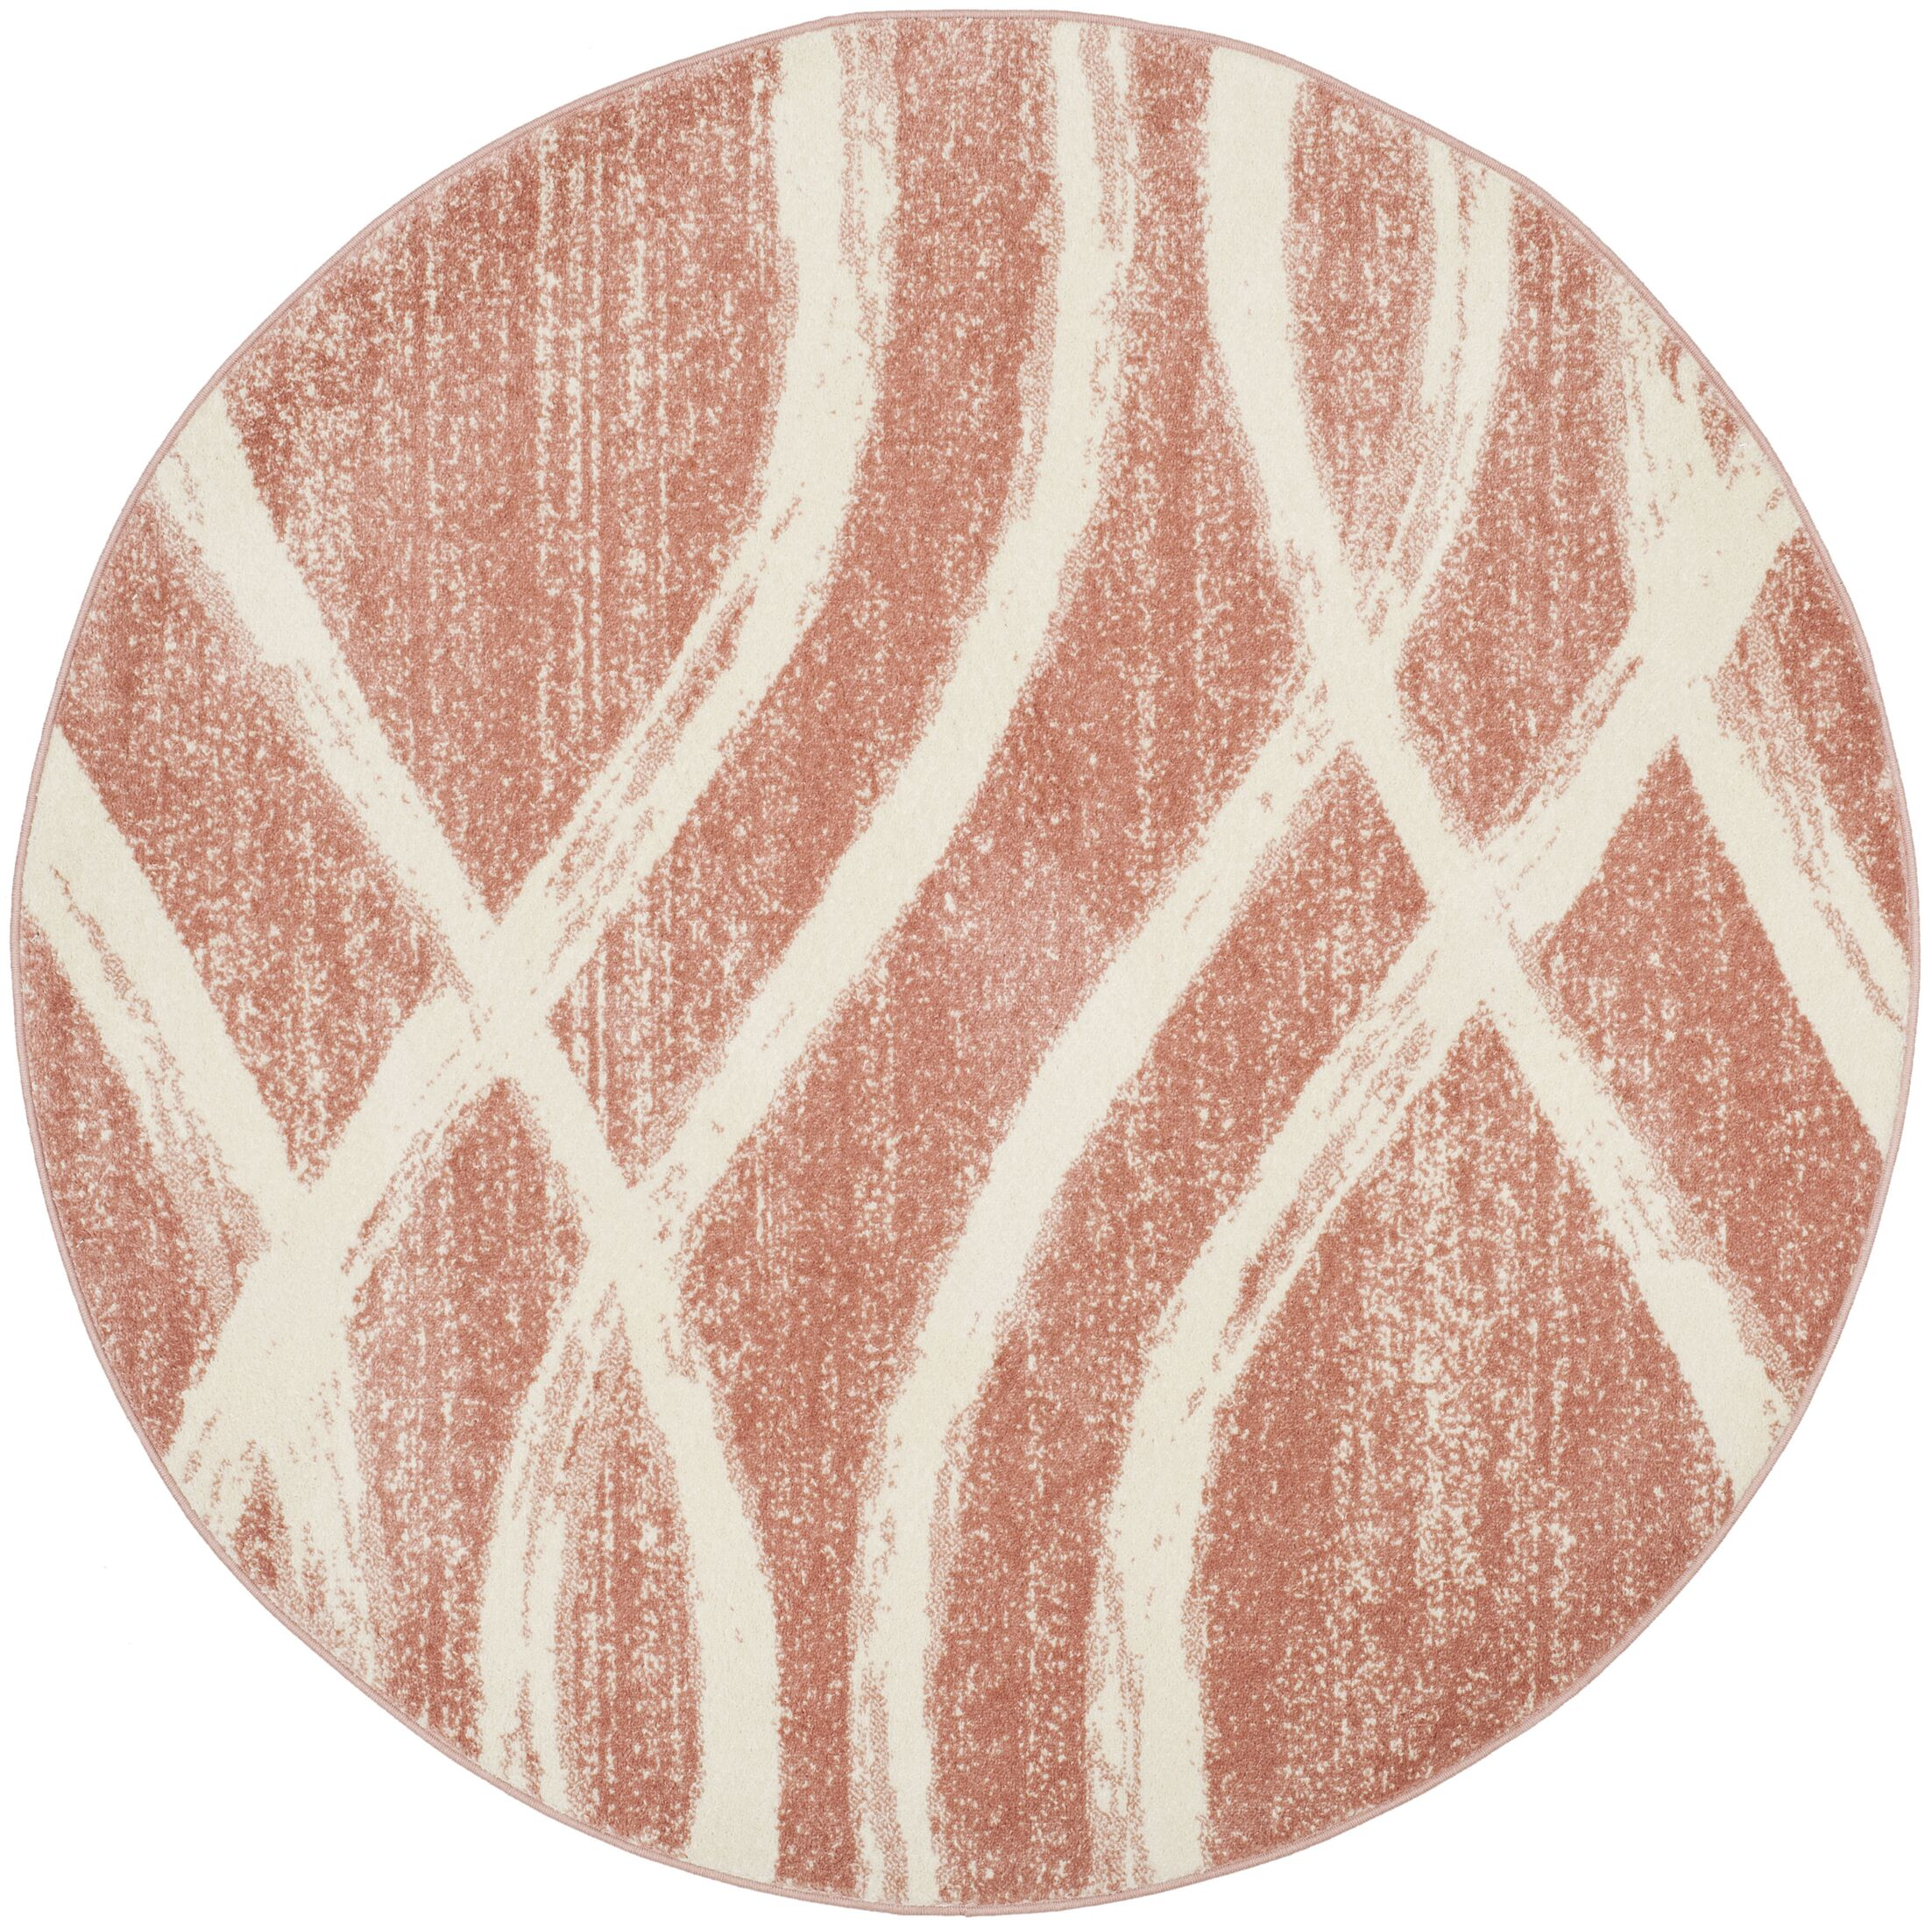 Graciano Pink/Beige Area Rug Rug Size: Round 6'